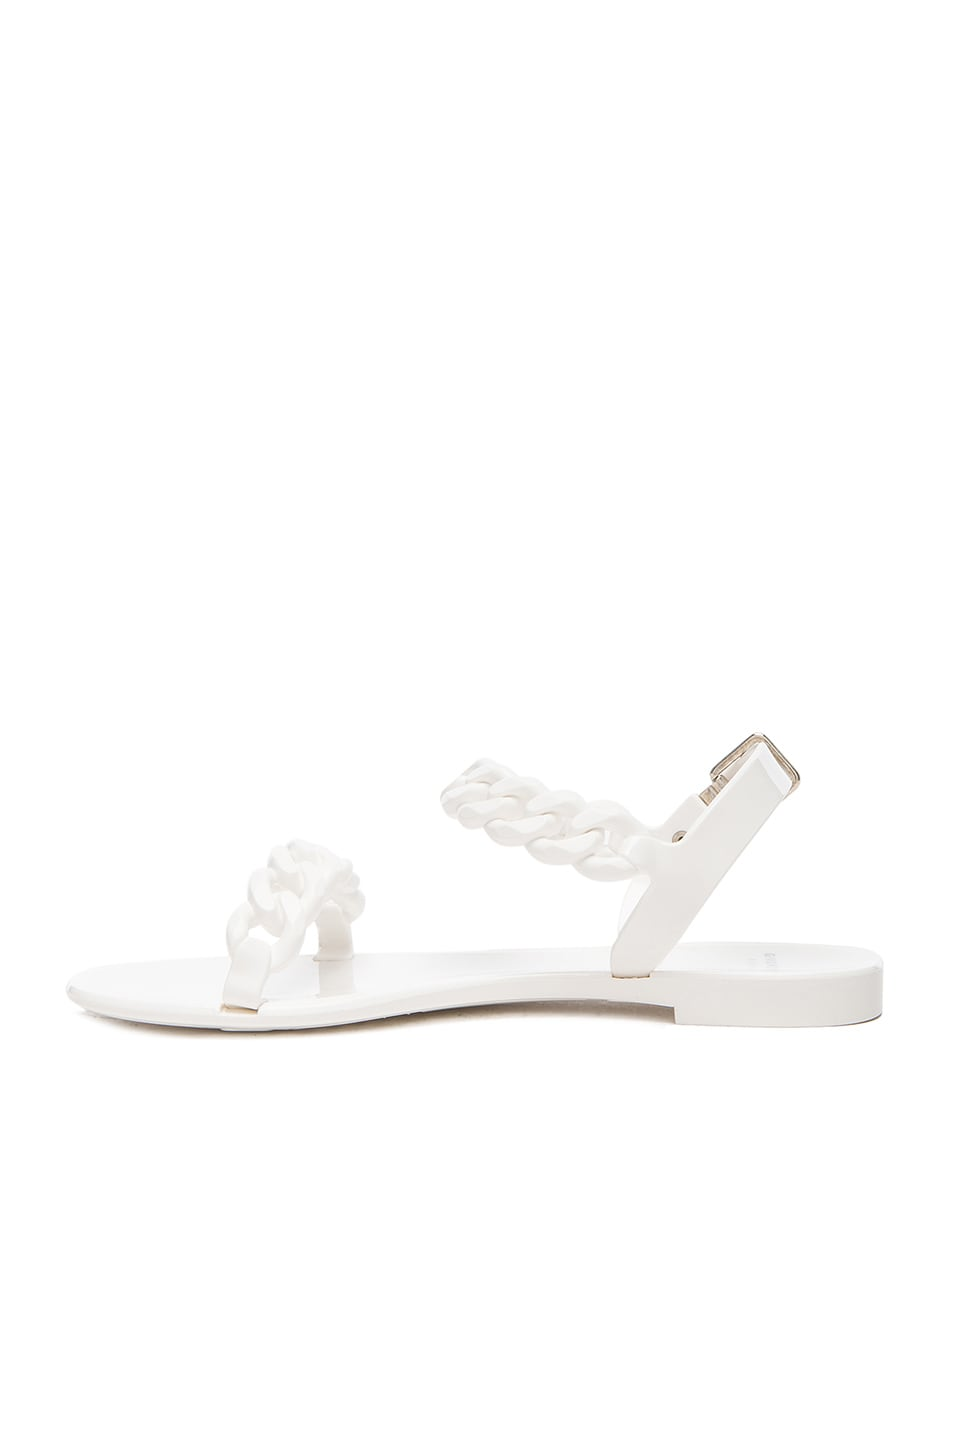 Image 5 of GIVENCHY Flat Jelly Chain Sandals in White